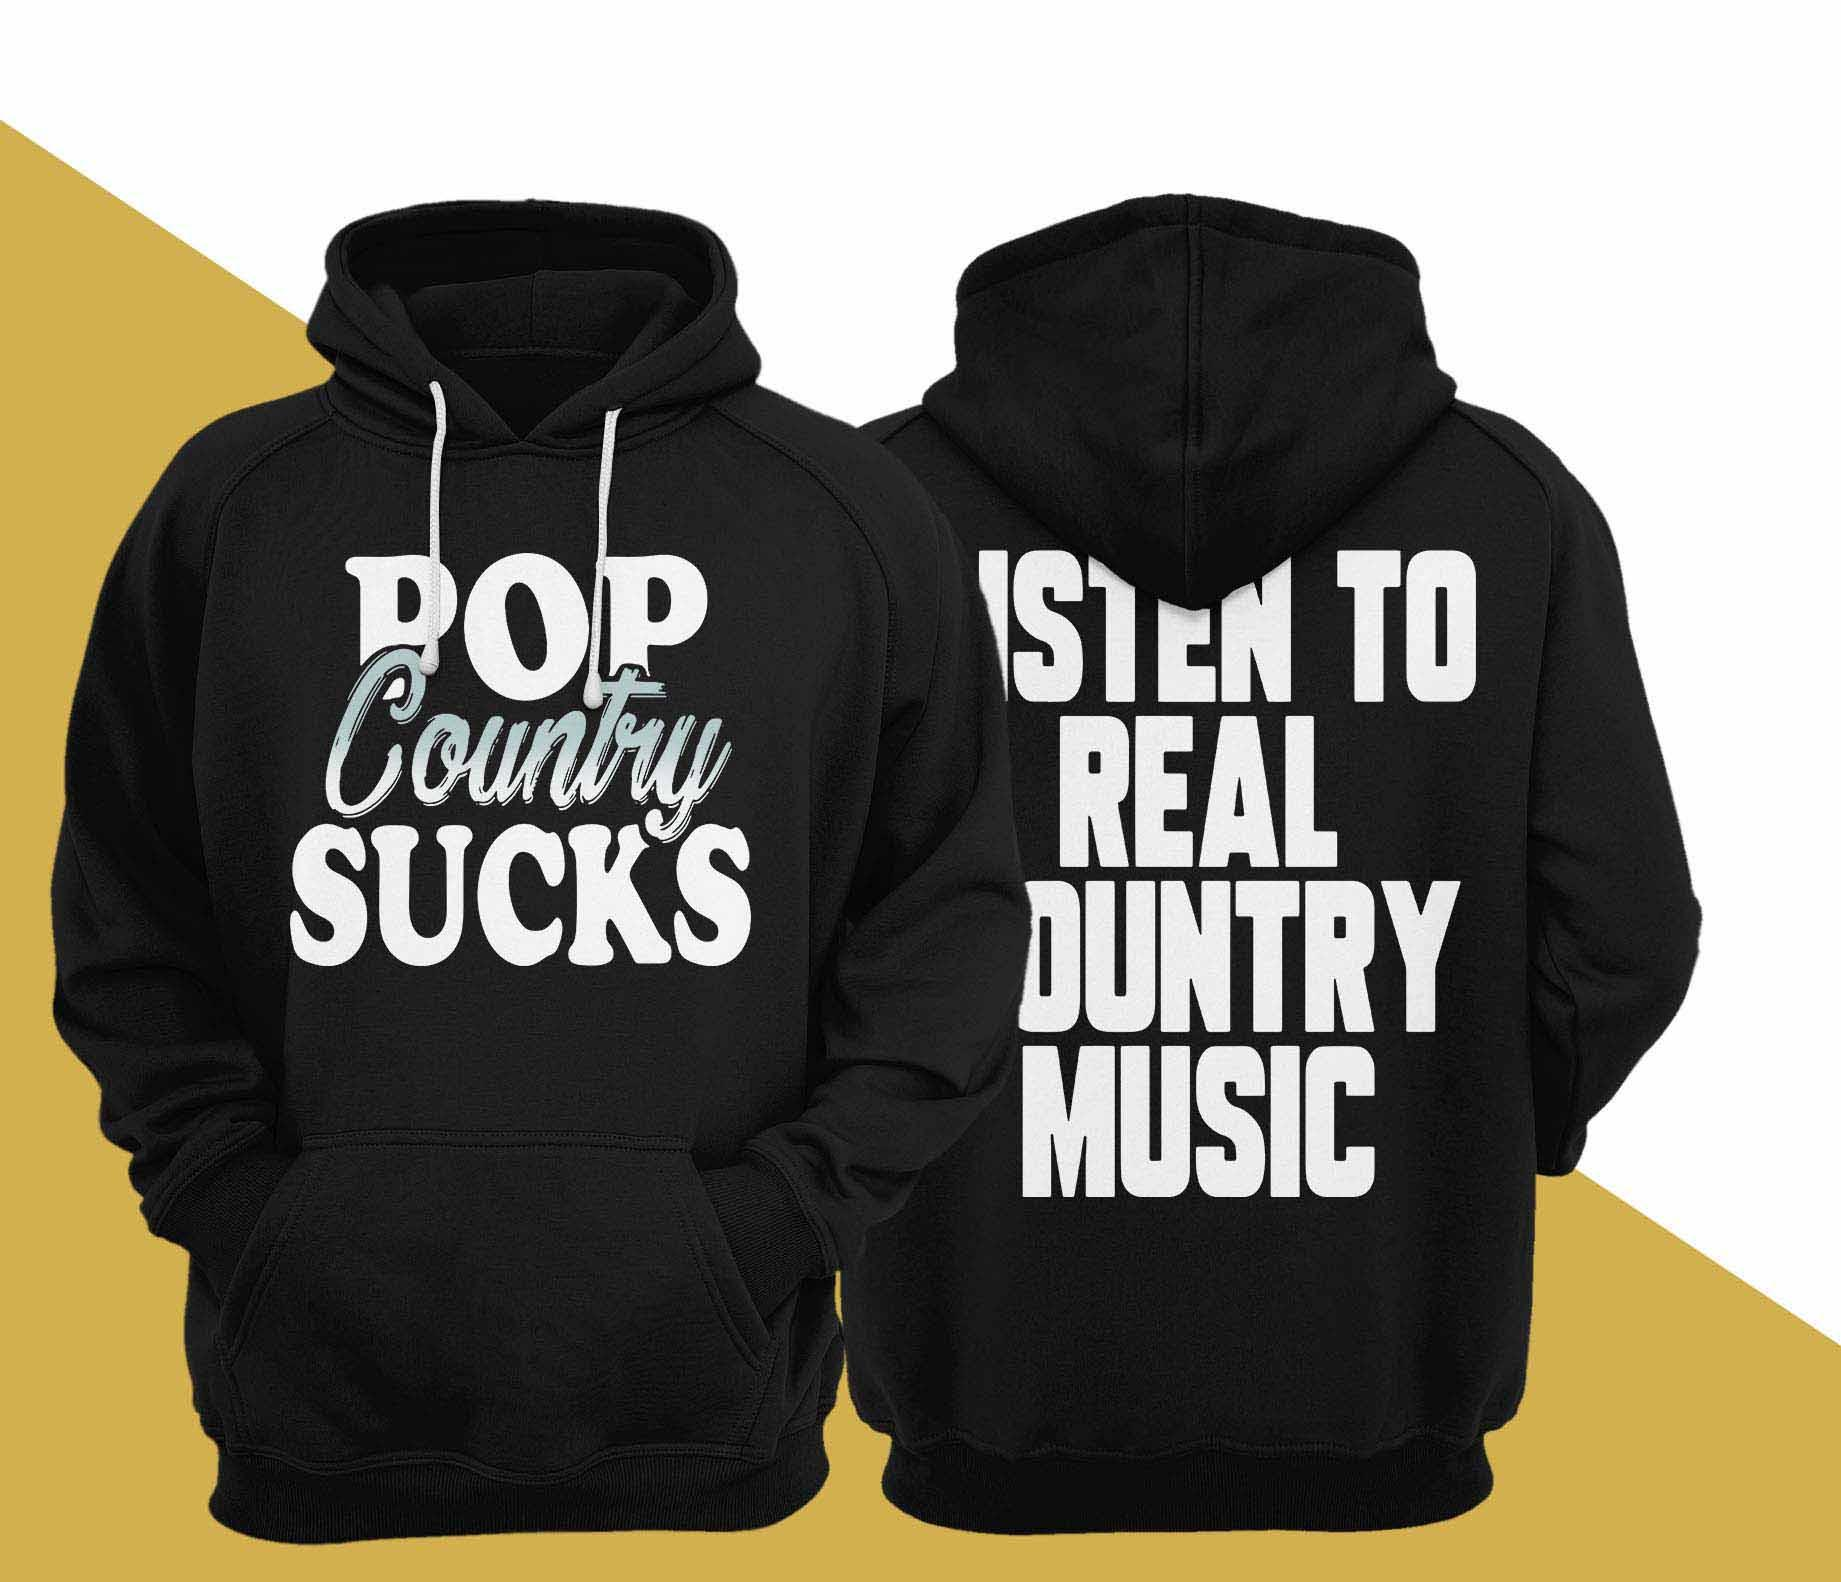 Pop Country Sucks Listen To Real Country Music Hoodie